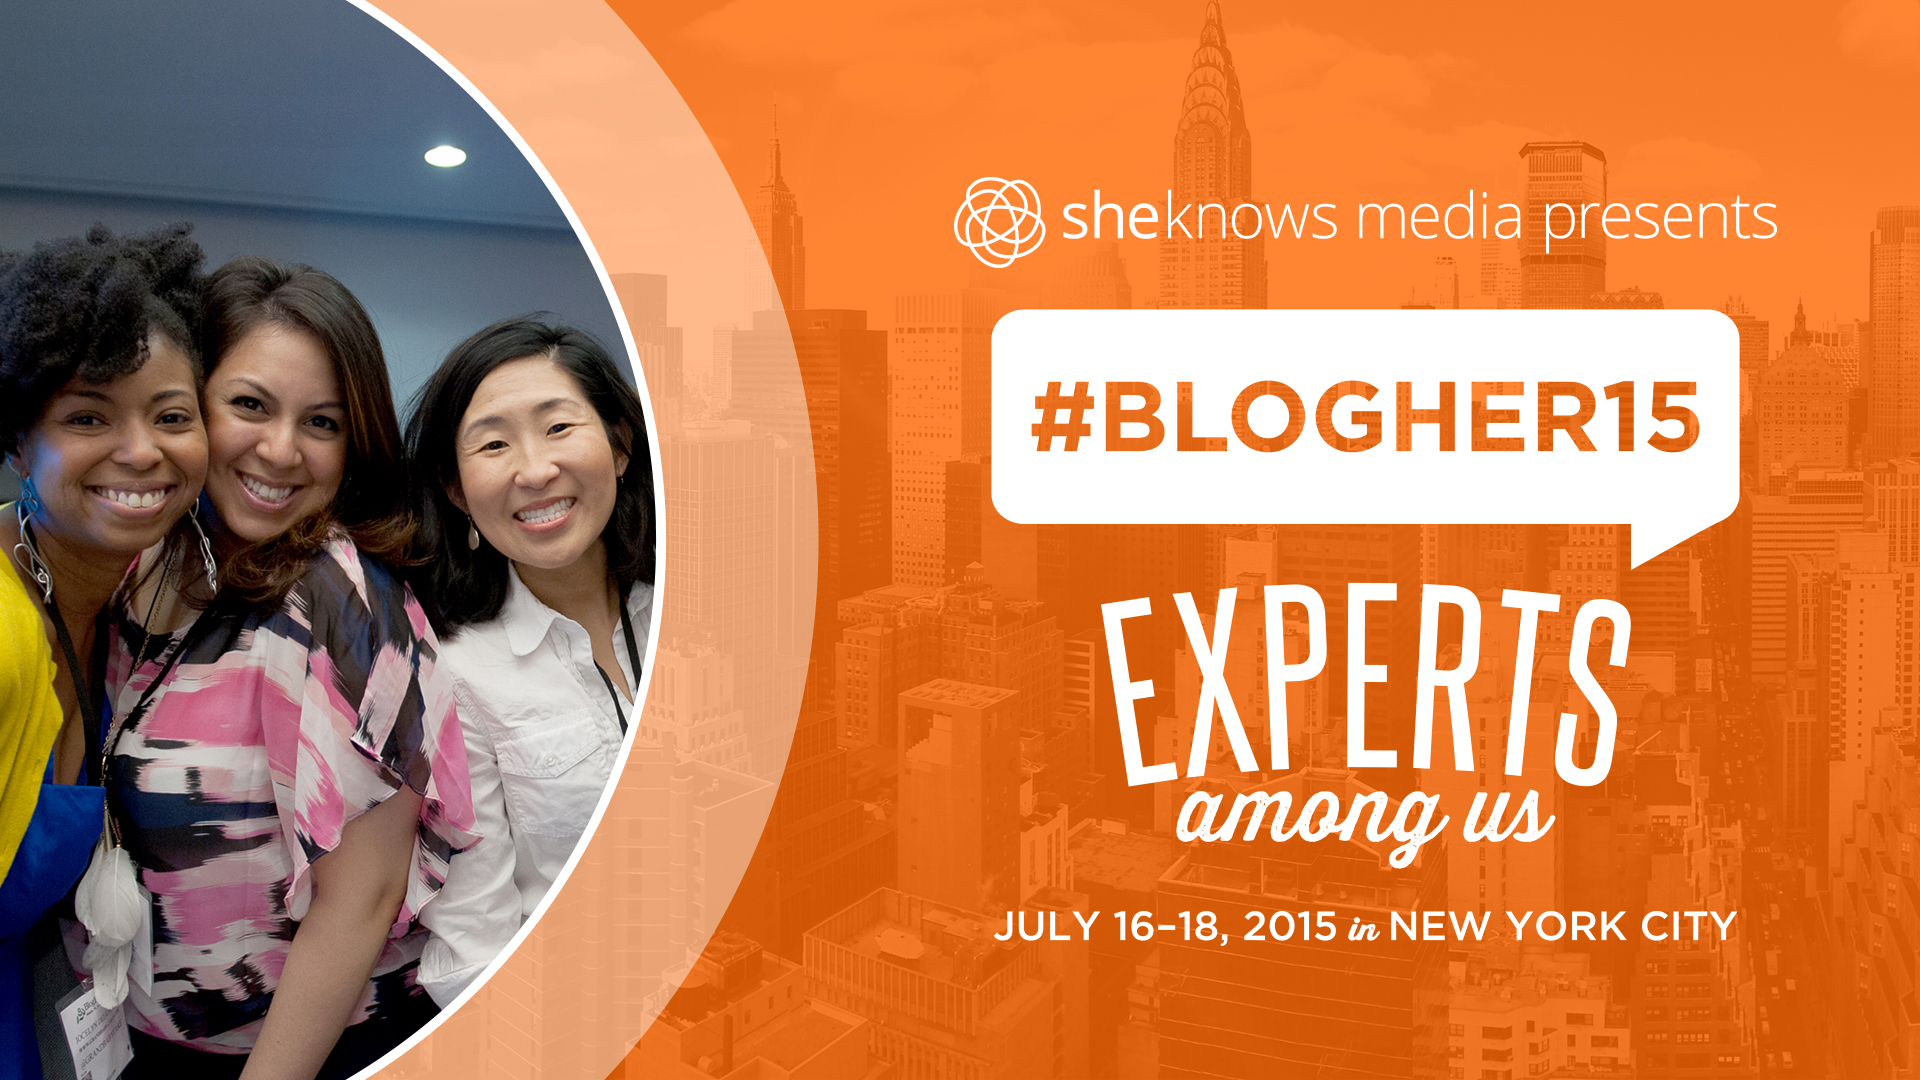 Experts Among Us BlogHer 15